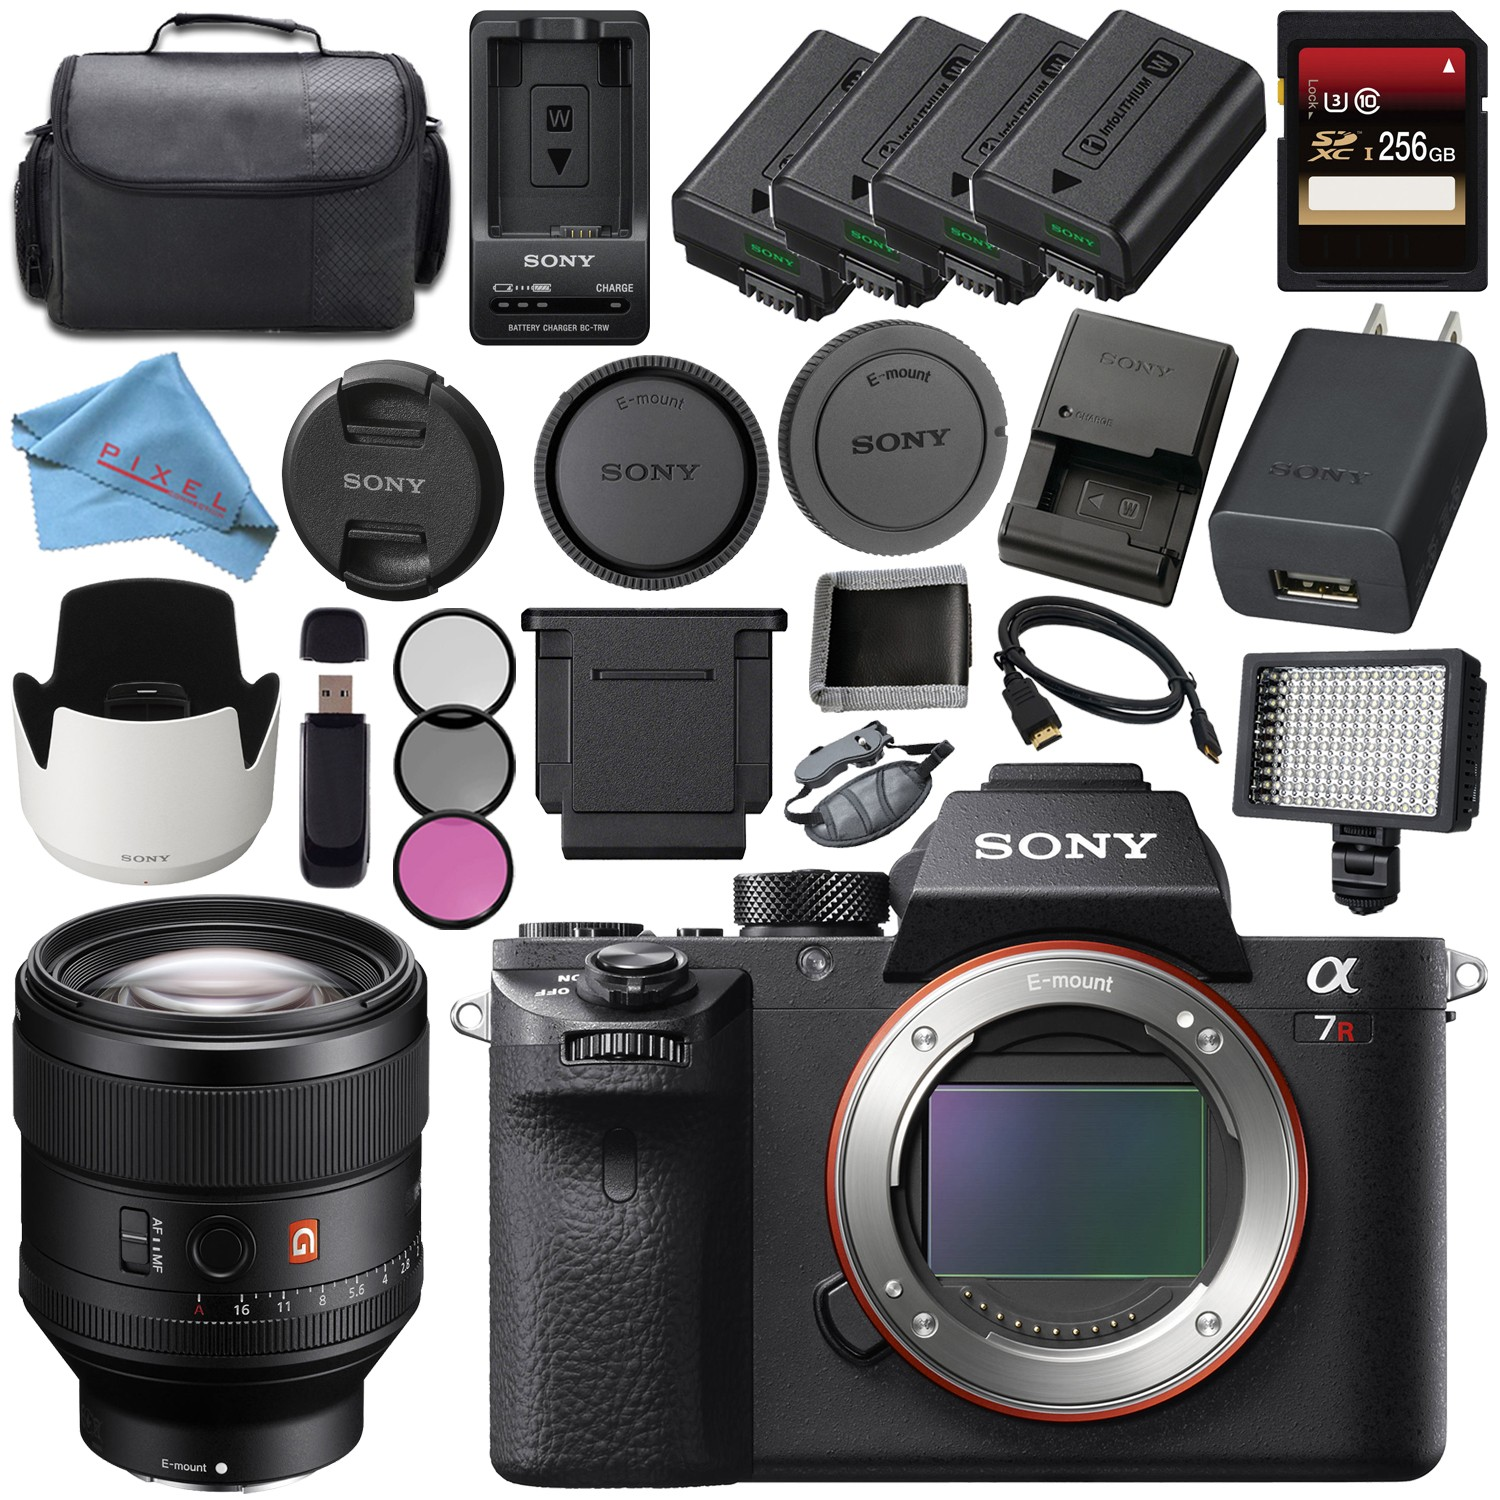 Sony ILCE7RM2/B Alpha a7R II Mirrorless Digital Camera (Body Only) + Sony FE 85mm f/1.4 GM Lens SEL85F14GM + 256GB SDXC Card + NP-FW50 Lithium Ion Battery + External Rapid Charger Bundle